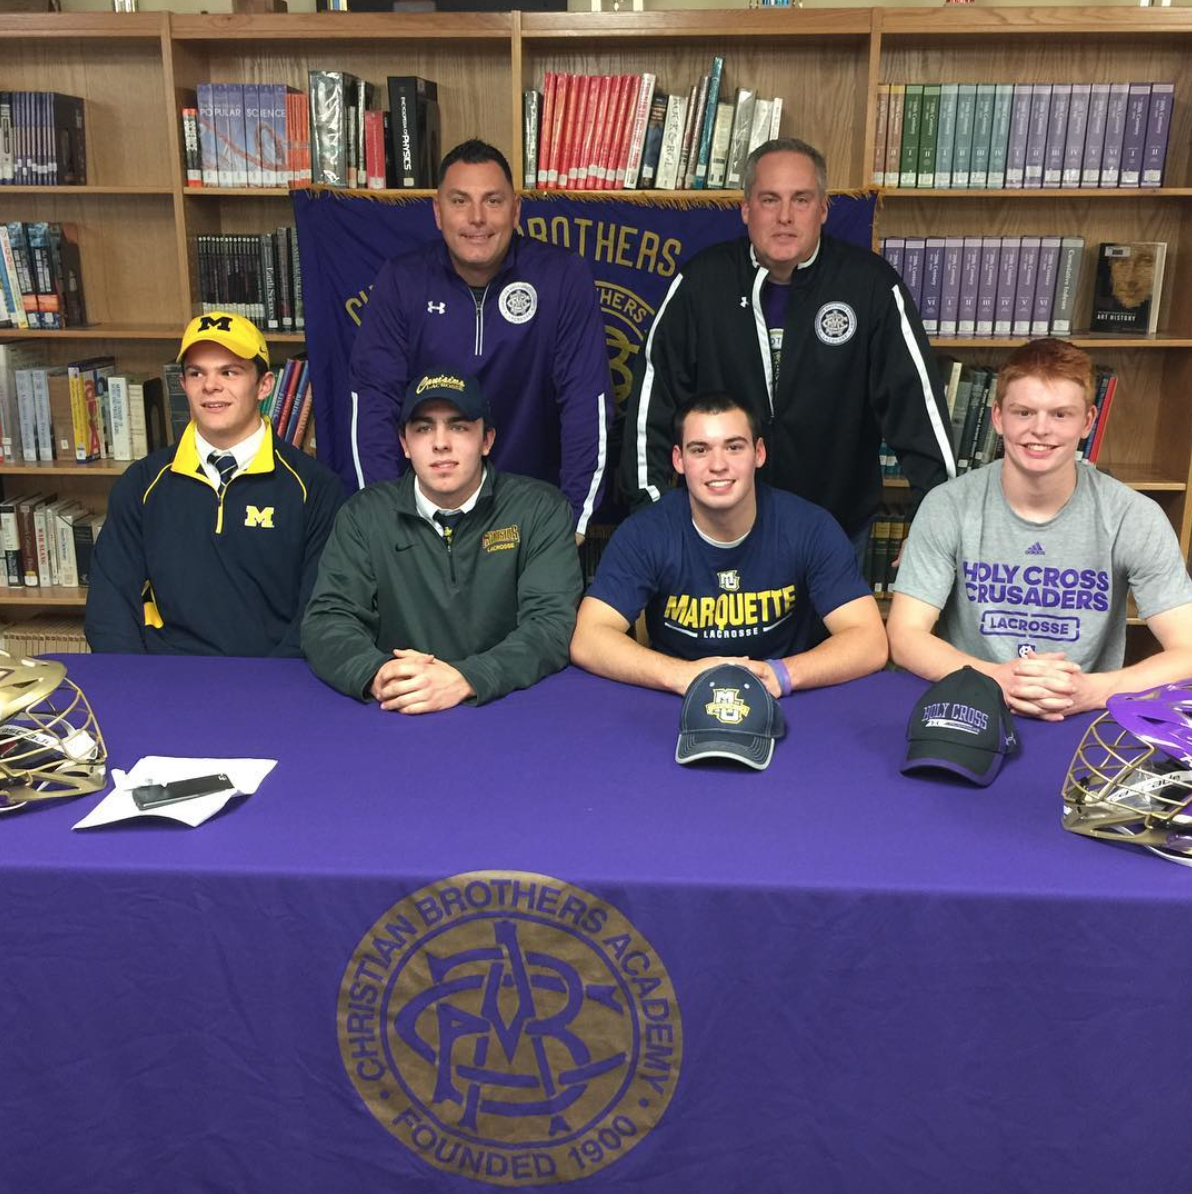 Ric Beardsley with some of his athletes on National Letter of Intent Day. (Photo: Ric Beardsley Instagram)